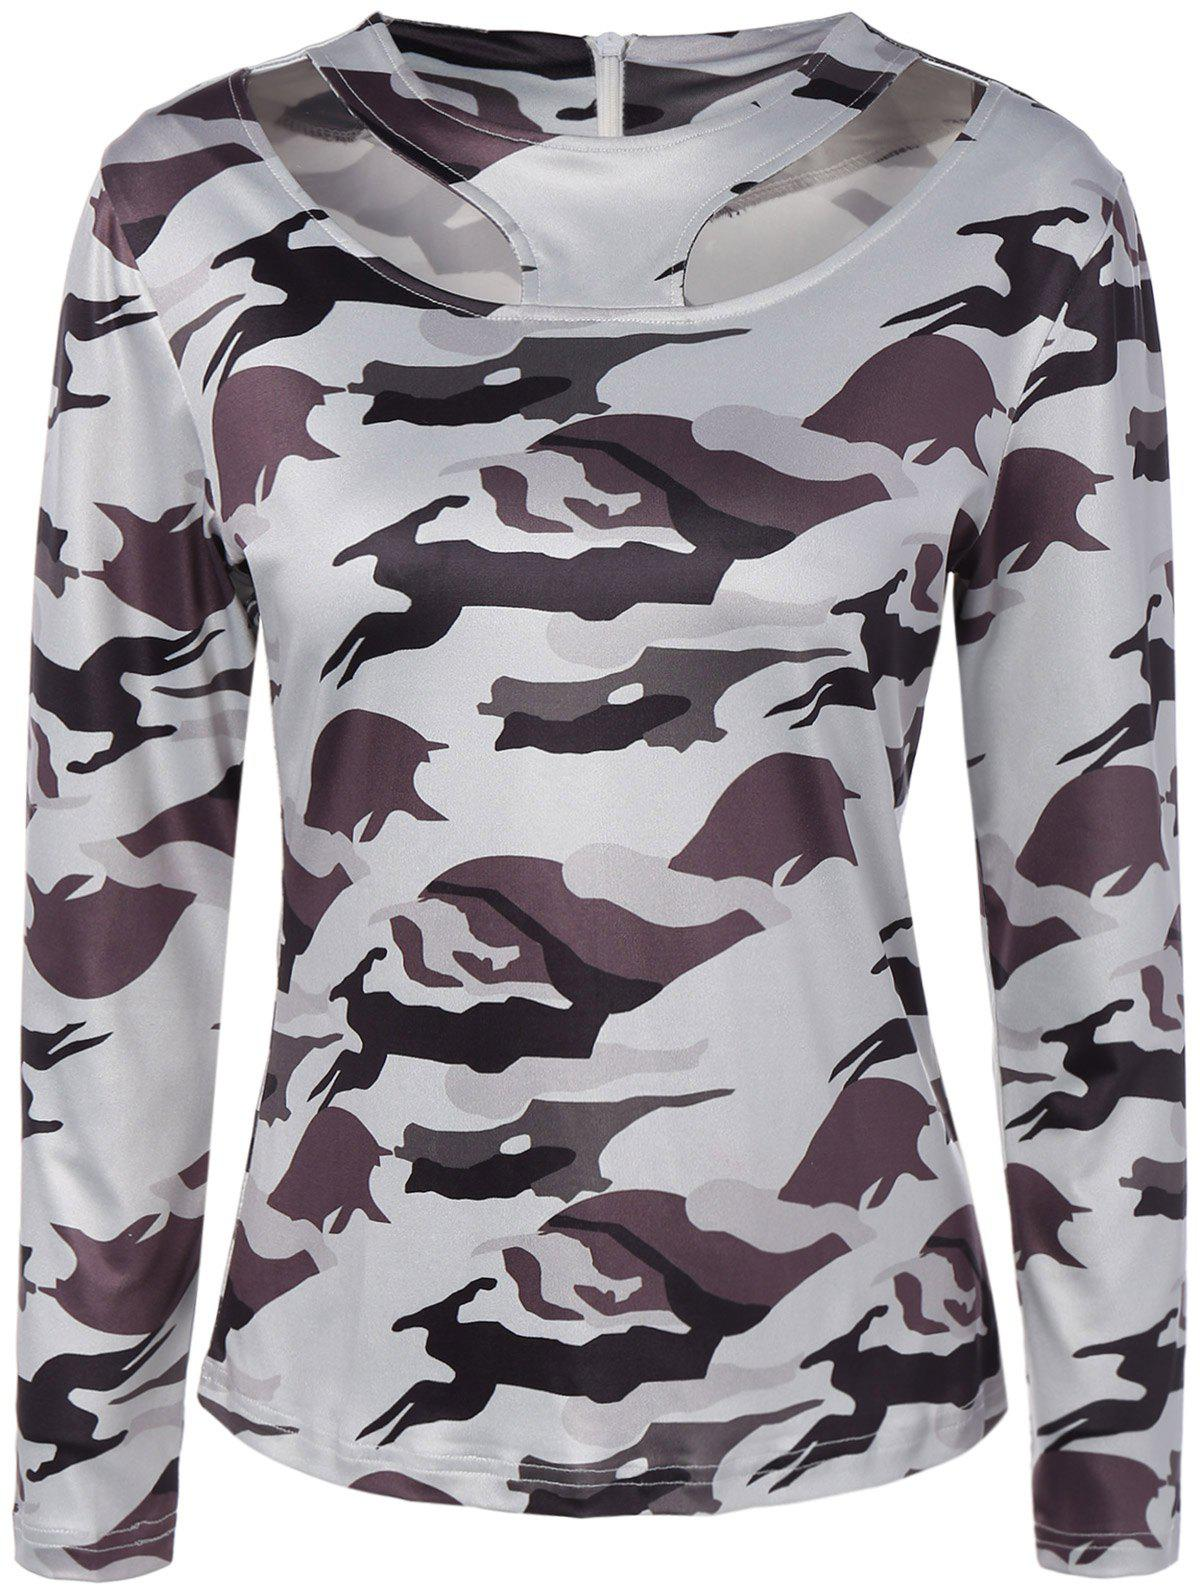 Hot Jewel Neck Cut Out Camouflage T-Shirt